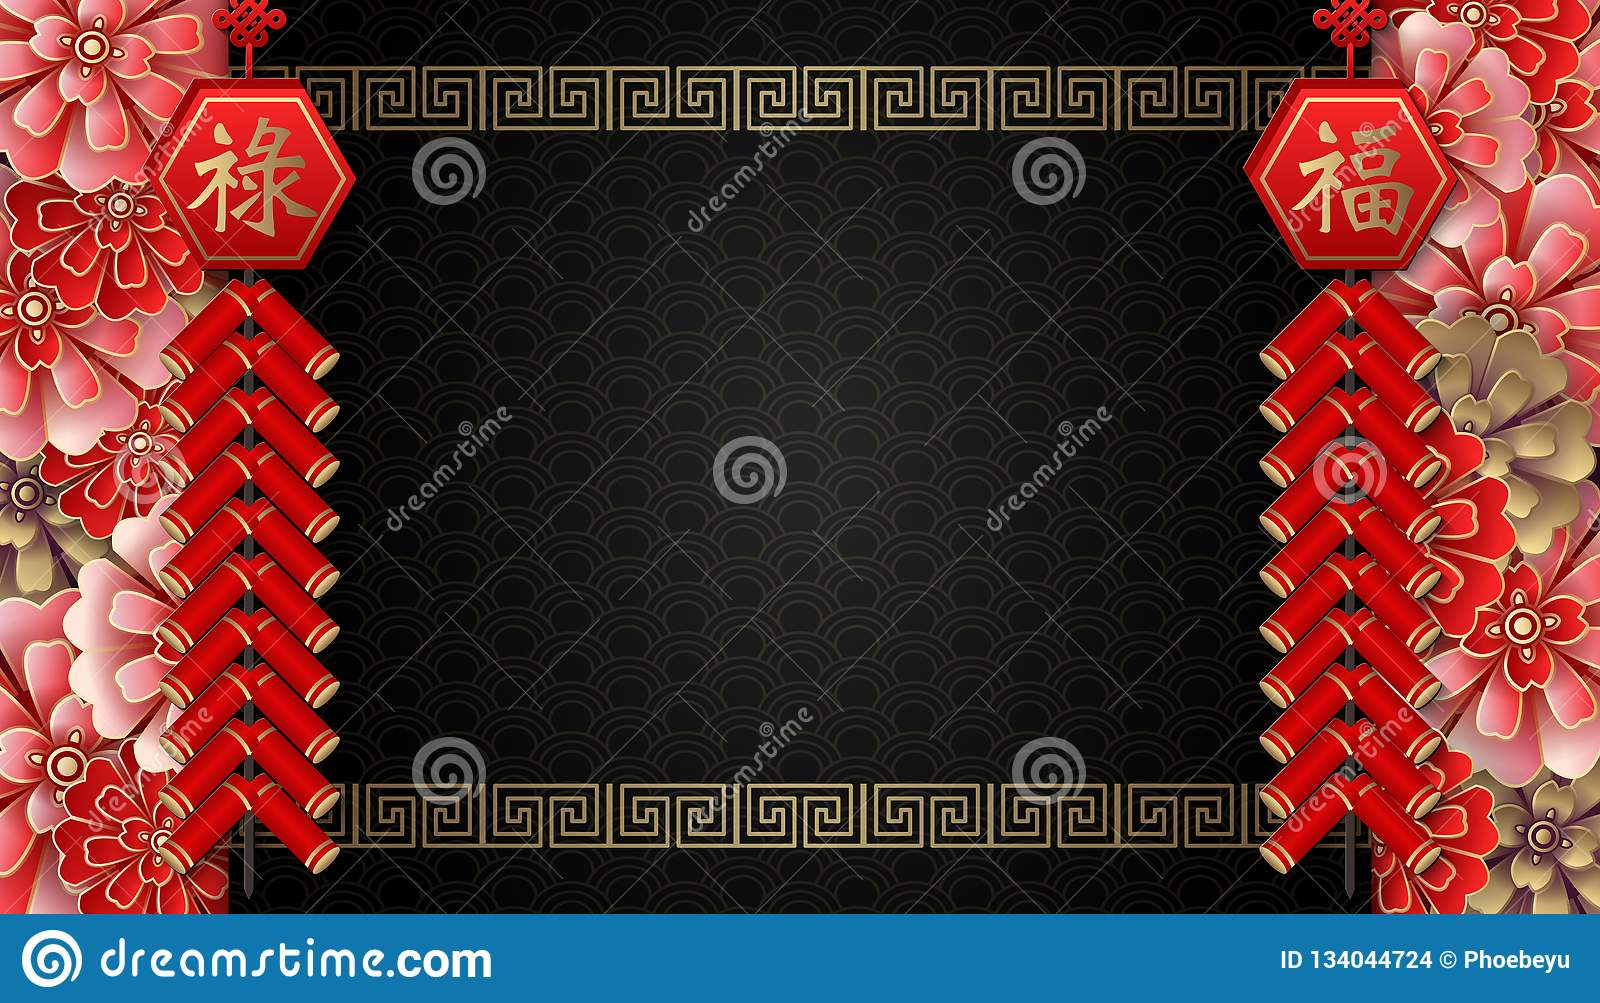 Happy Chinese new year retro relief flower firecrackers spiral cross lattice frame border